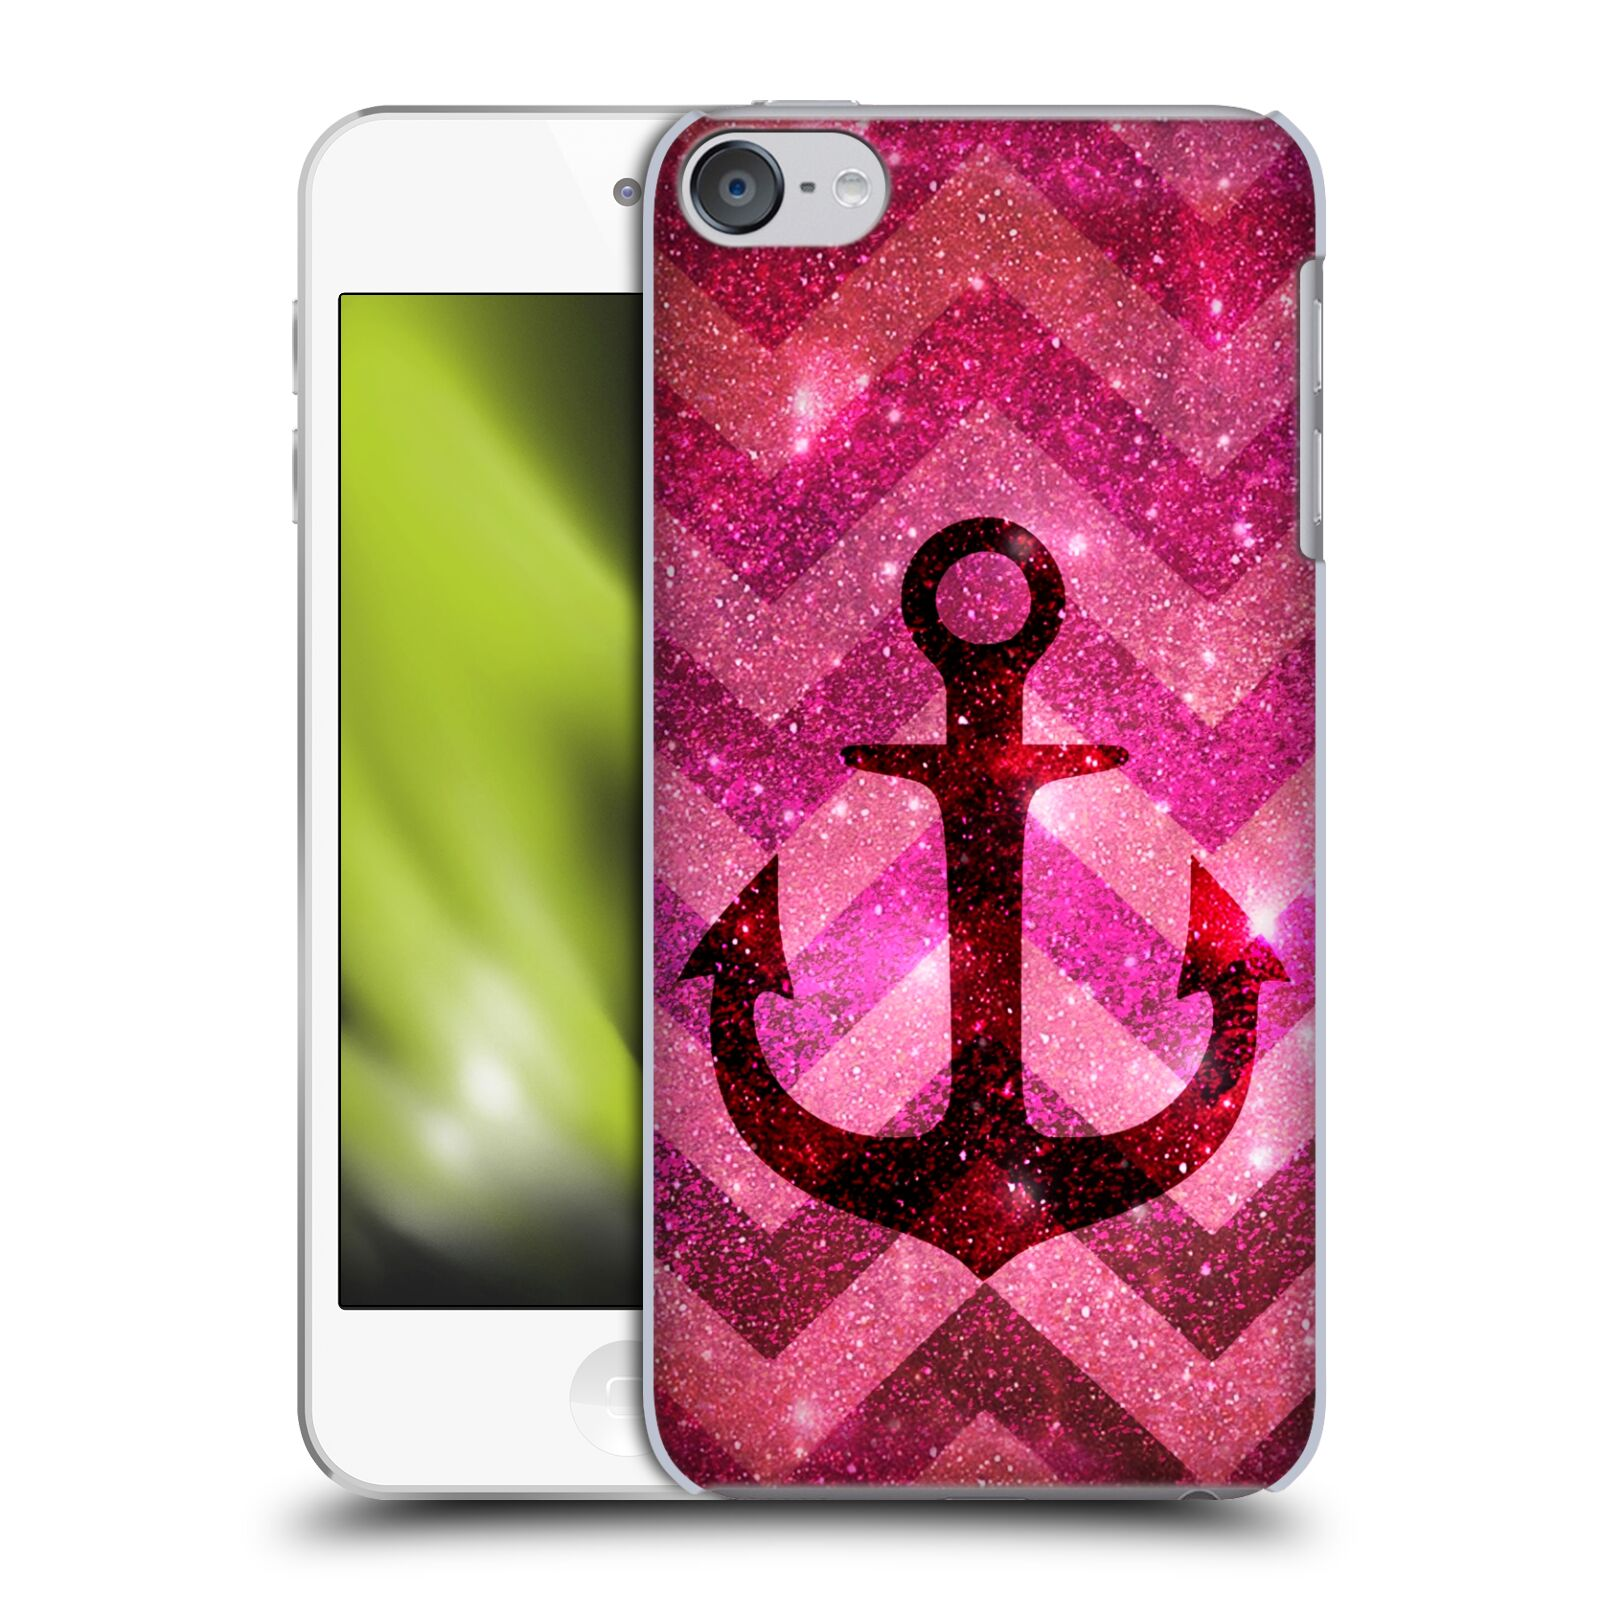 OFFICIAL-MONIKA-STRIGEL-GALAXY-ANCHORS-HARD-BACK-CASE-FOR-APPLE-iPOD-TOUCH-MP3